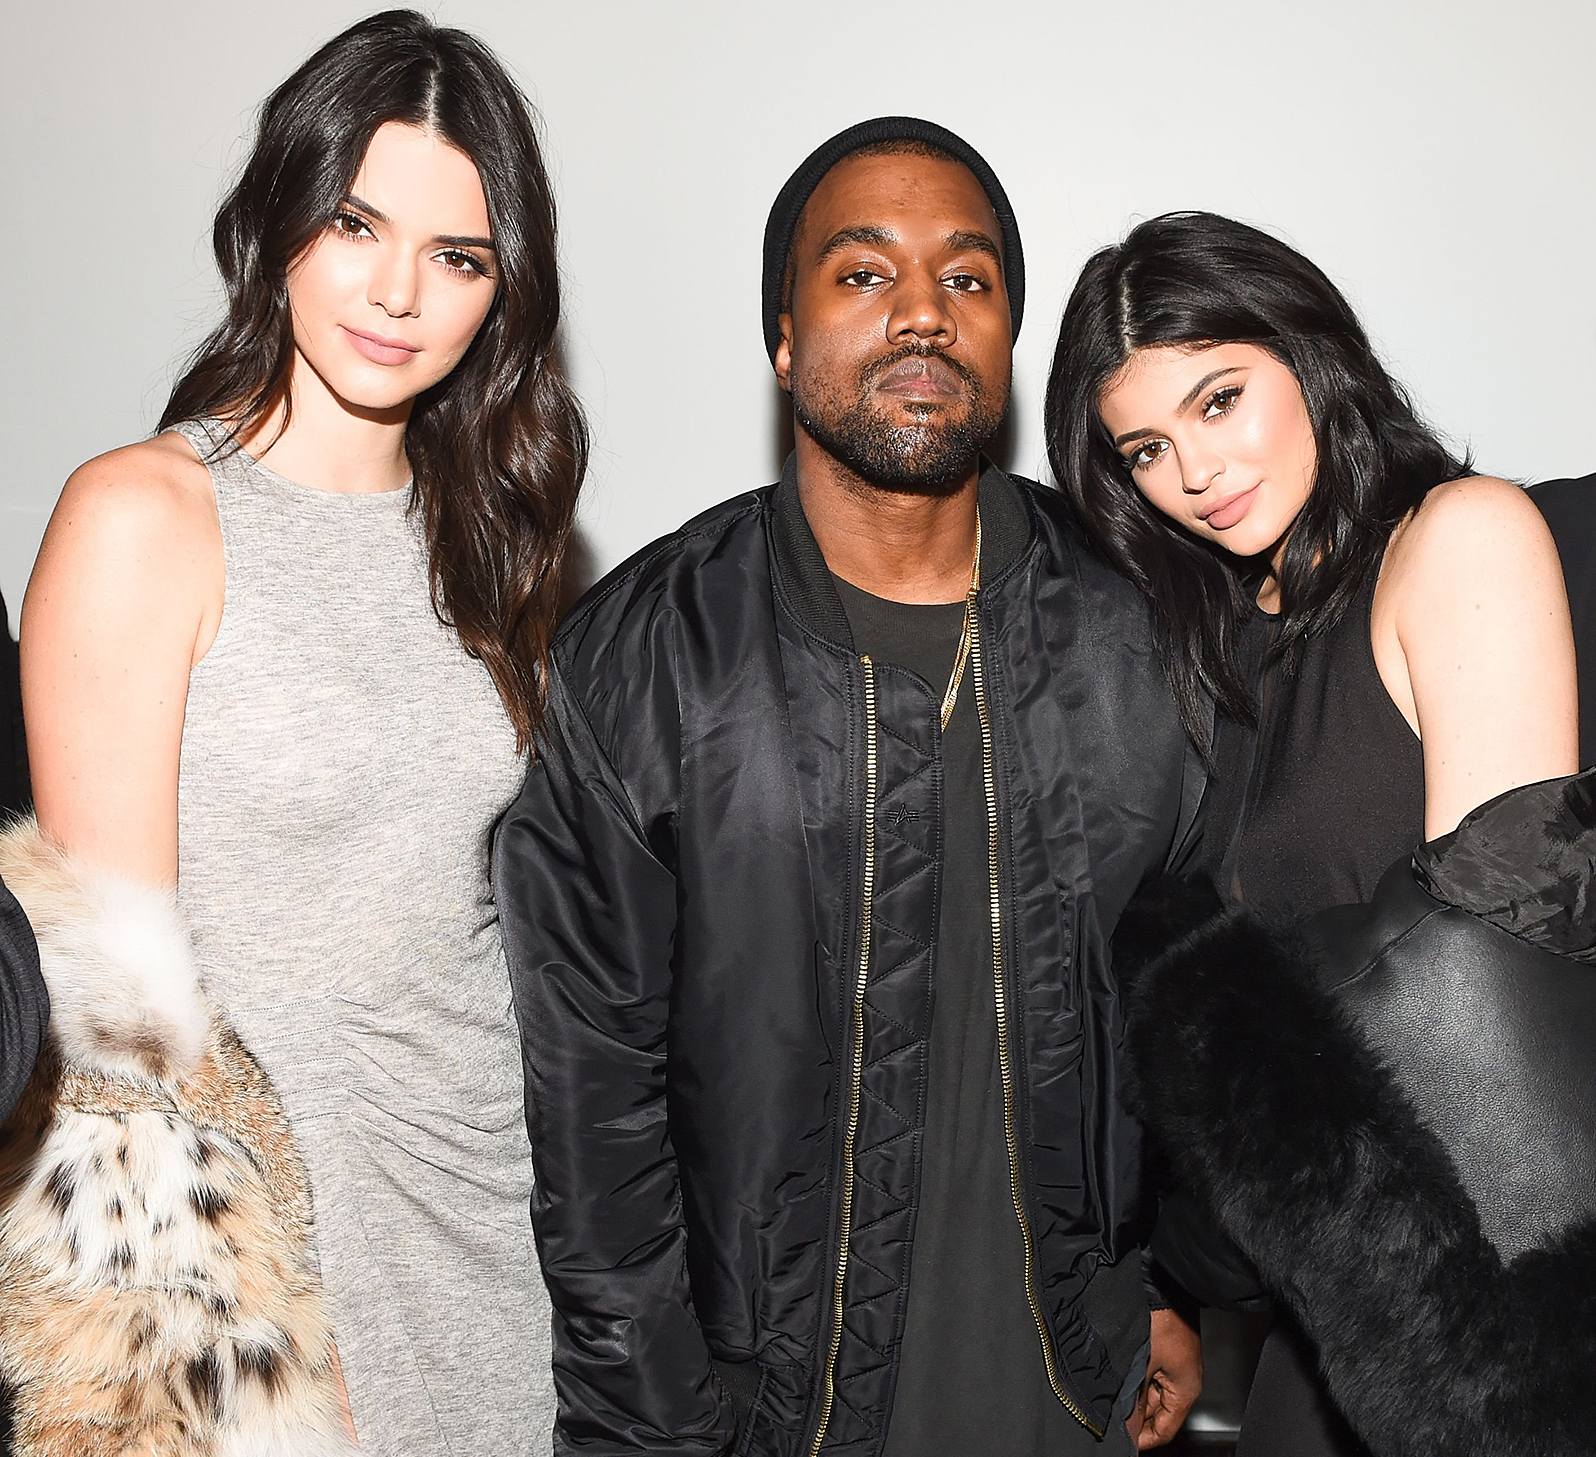 Kendall Jenner, Kanye West, Kylie Jenner at the Kendall & Kylie Collection launch event.